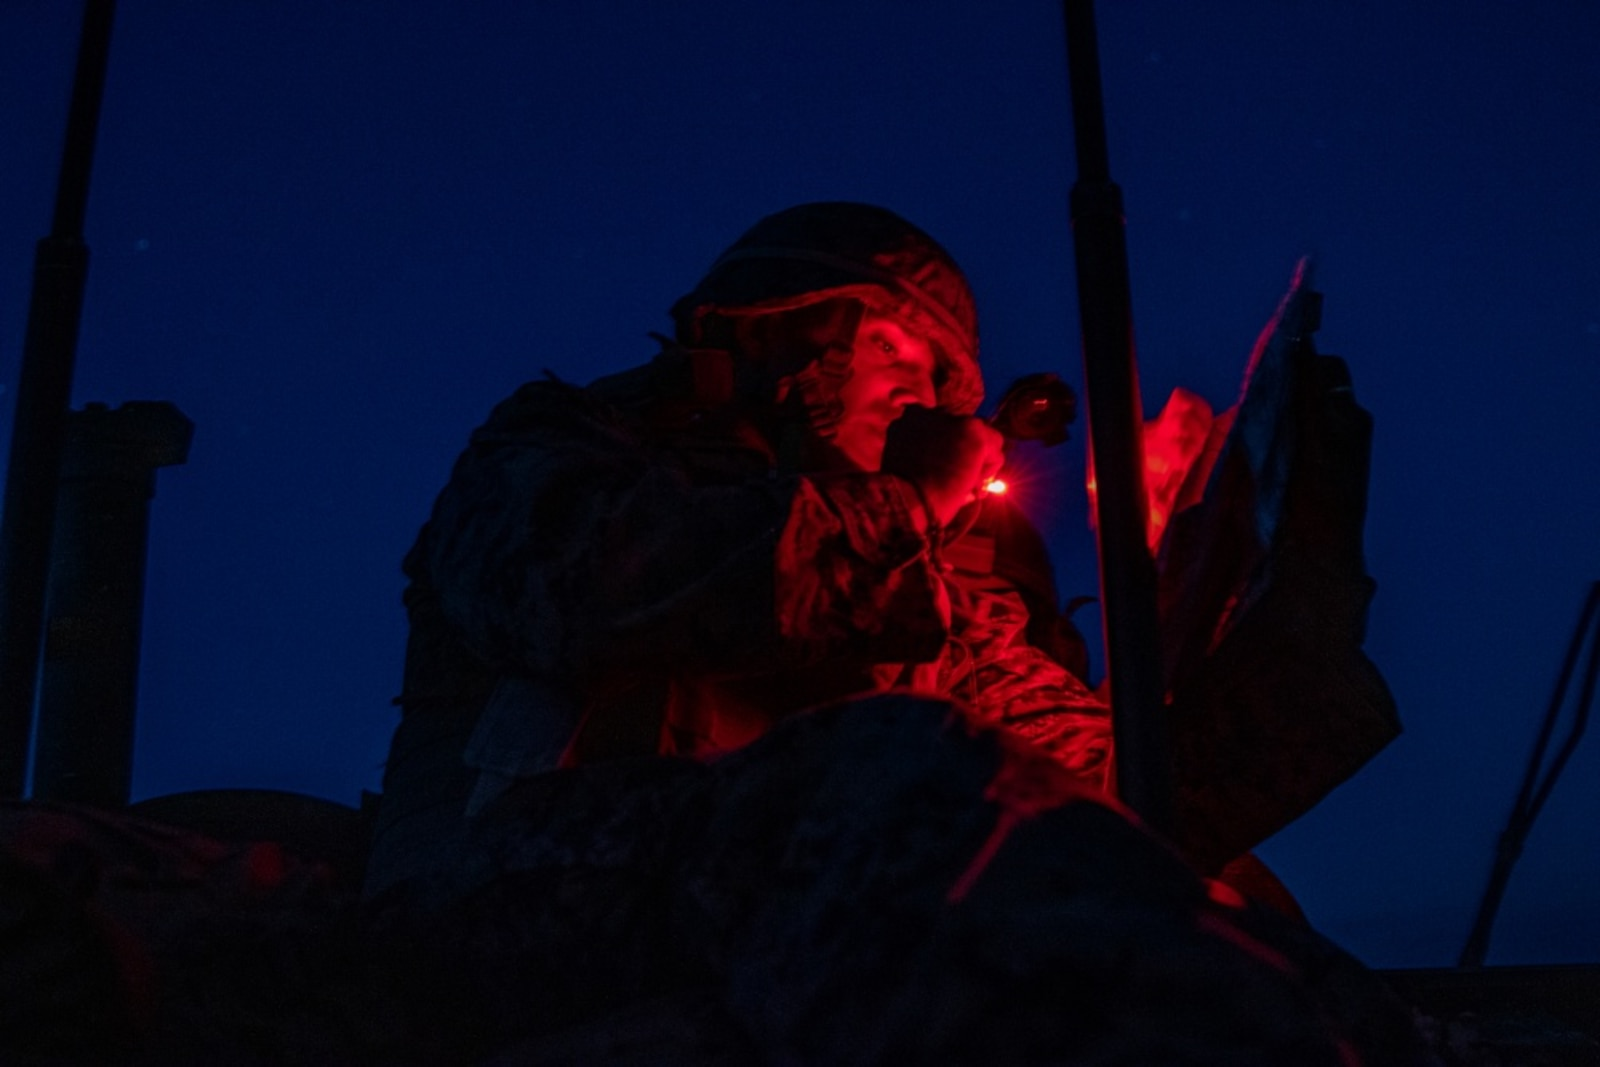 U.S. Marine Corps Staff Sgt. Marcos Luna, an exercise evaluator with 3rd Light Armored Reconnaissance Battalion, 1st Marine Division, looks at a map during a Marine Corps Combat Readiness Evaluation (MCCRE) at Marine Corps Air Ground Combat Center Twentynine Palms, California, Sept. 6, 2019. The MCCRE is used to formally evaluate Marines on their combat readiness prior to their upcoming deployment. (U.S. Marine Corps photo by Lance Cpl. Roxanna Ortiz)